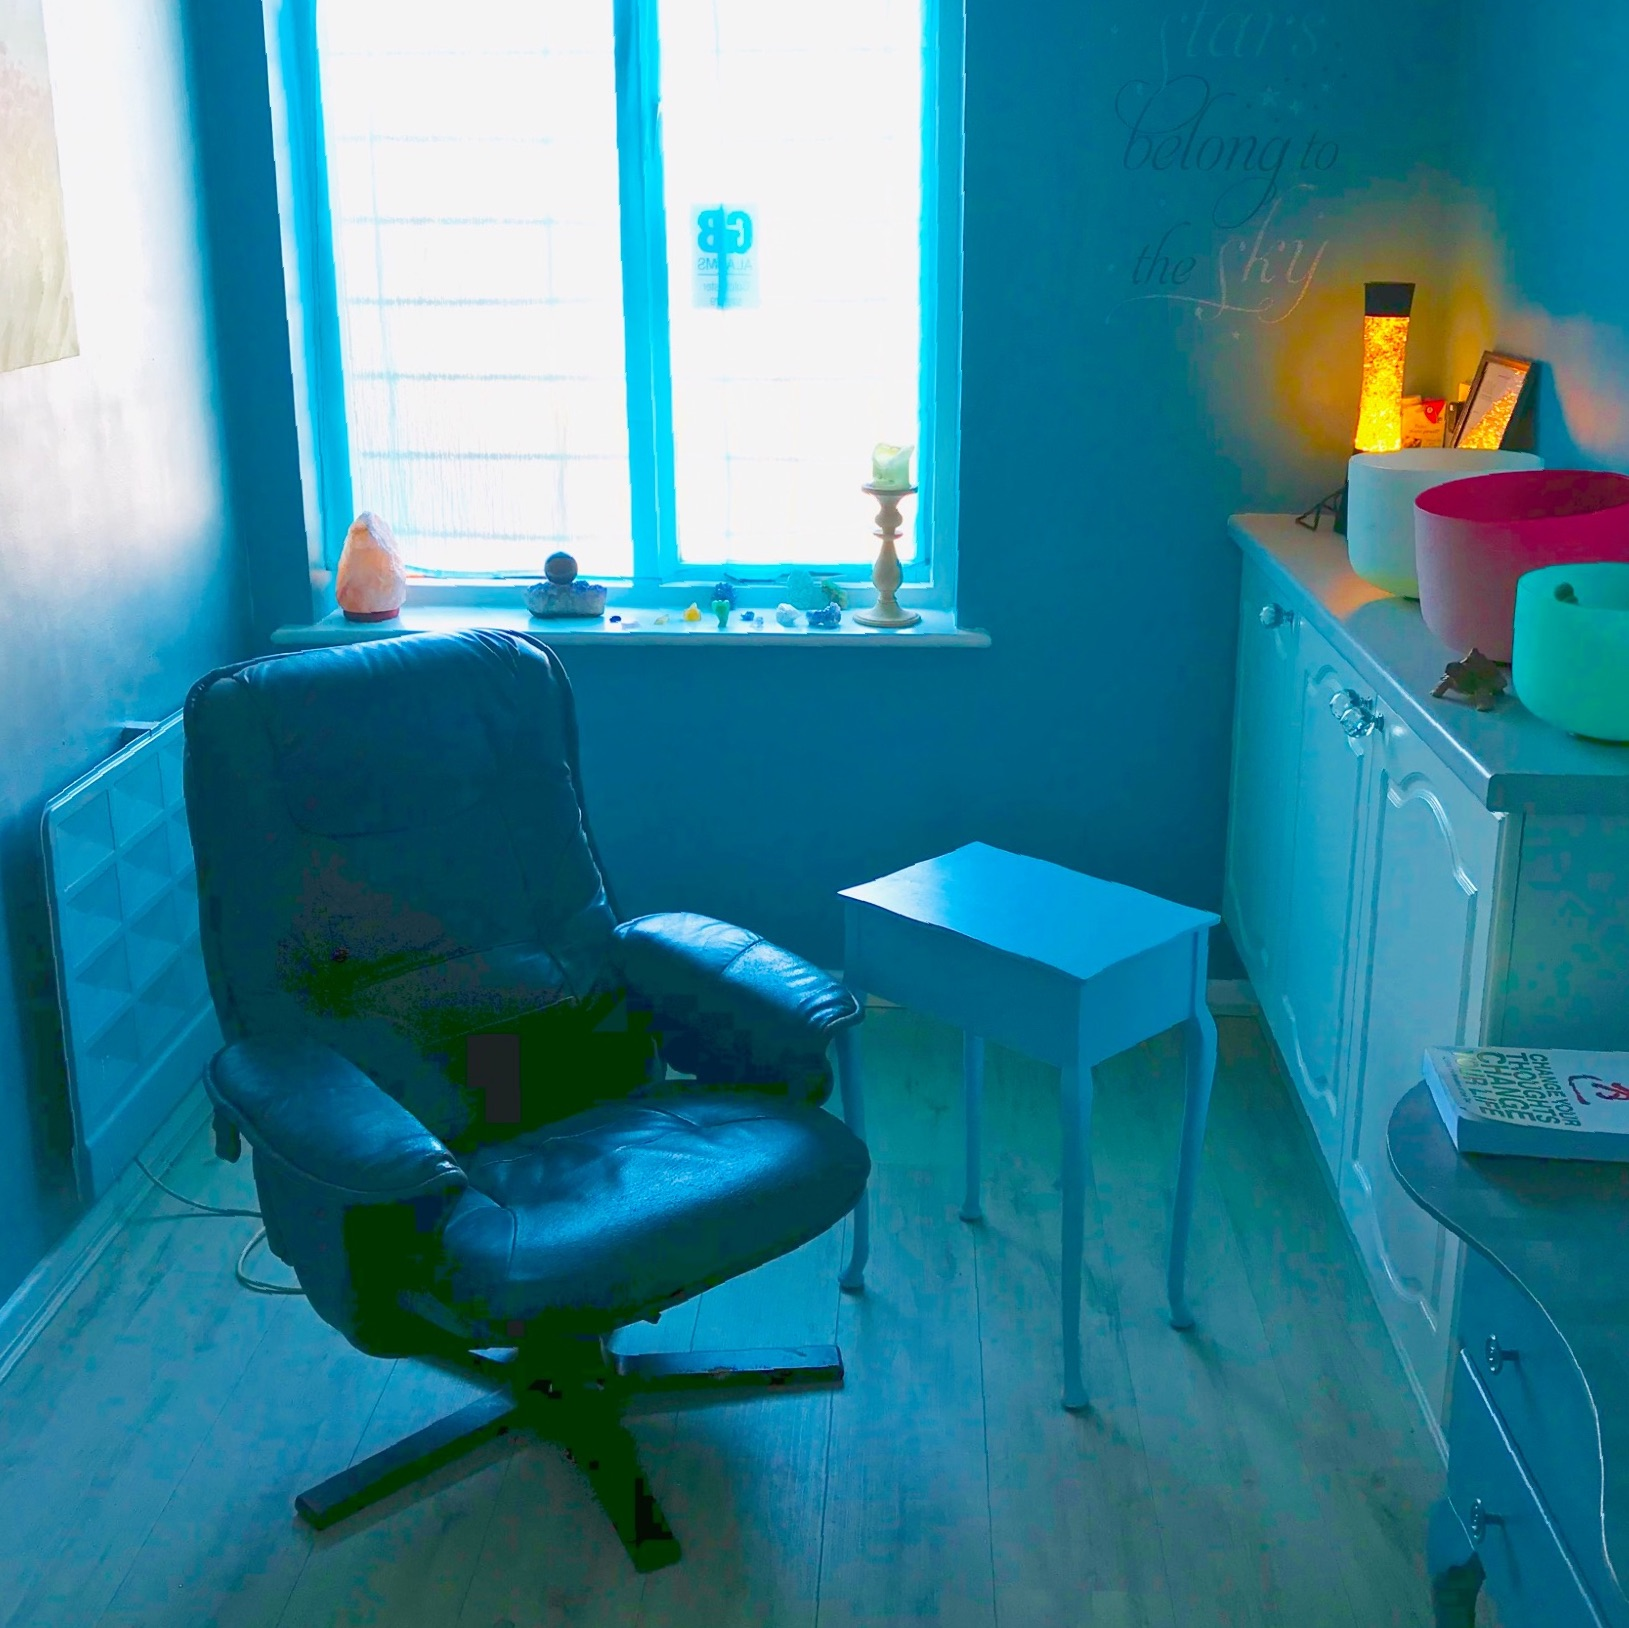 Psychic reading, healing and talking therapy room